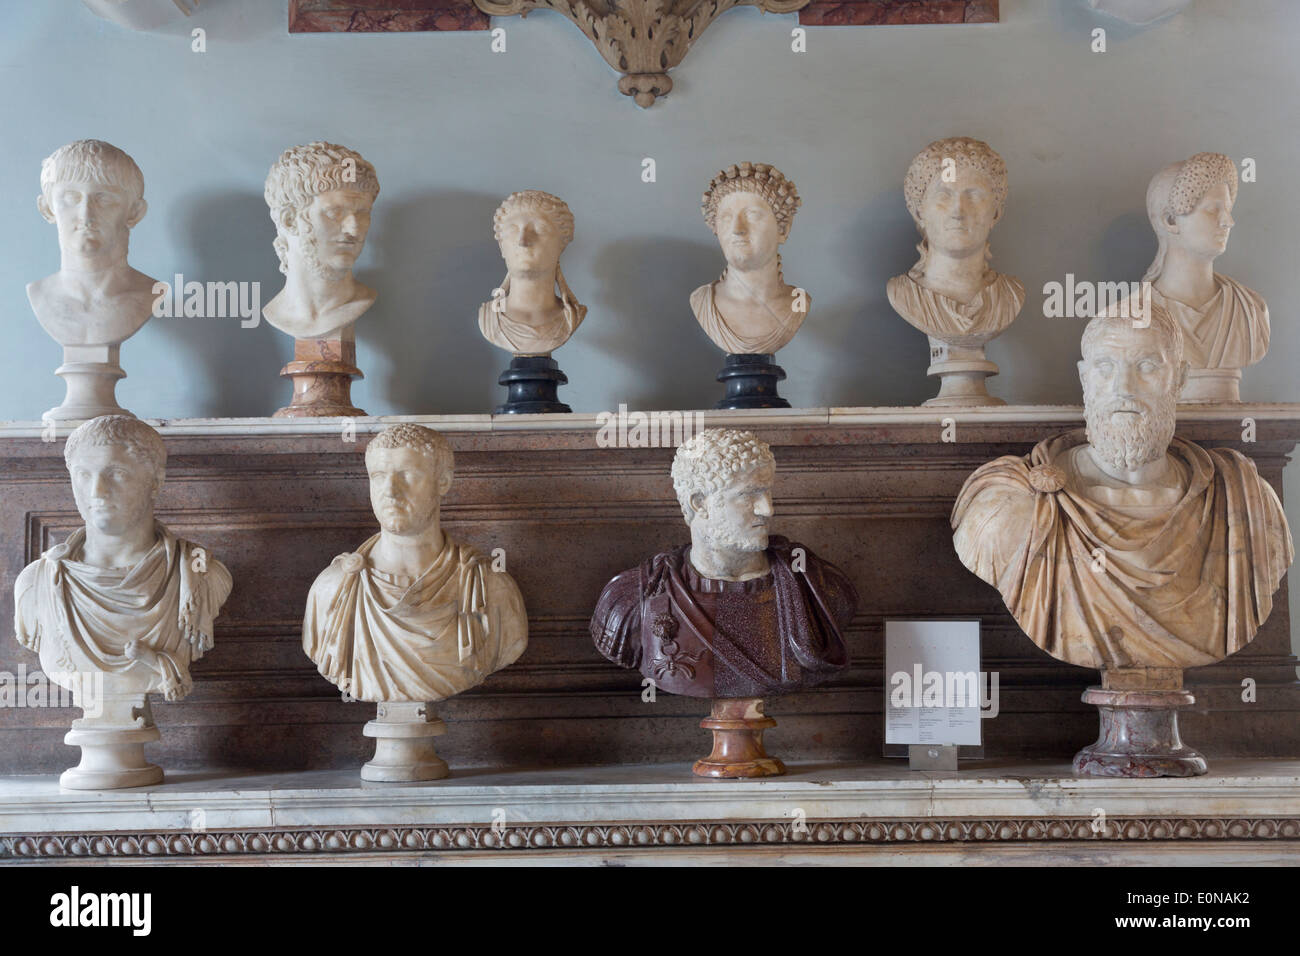 Portrait busts of Roman emperors, Capitoline Museums, Rome, Italy - Stock Image